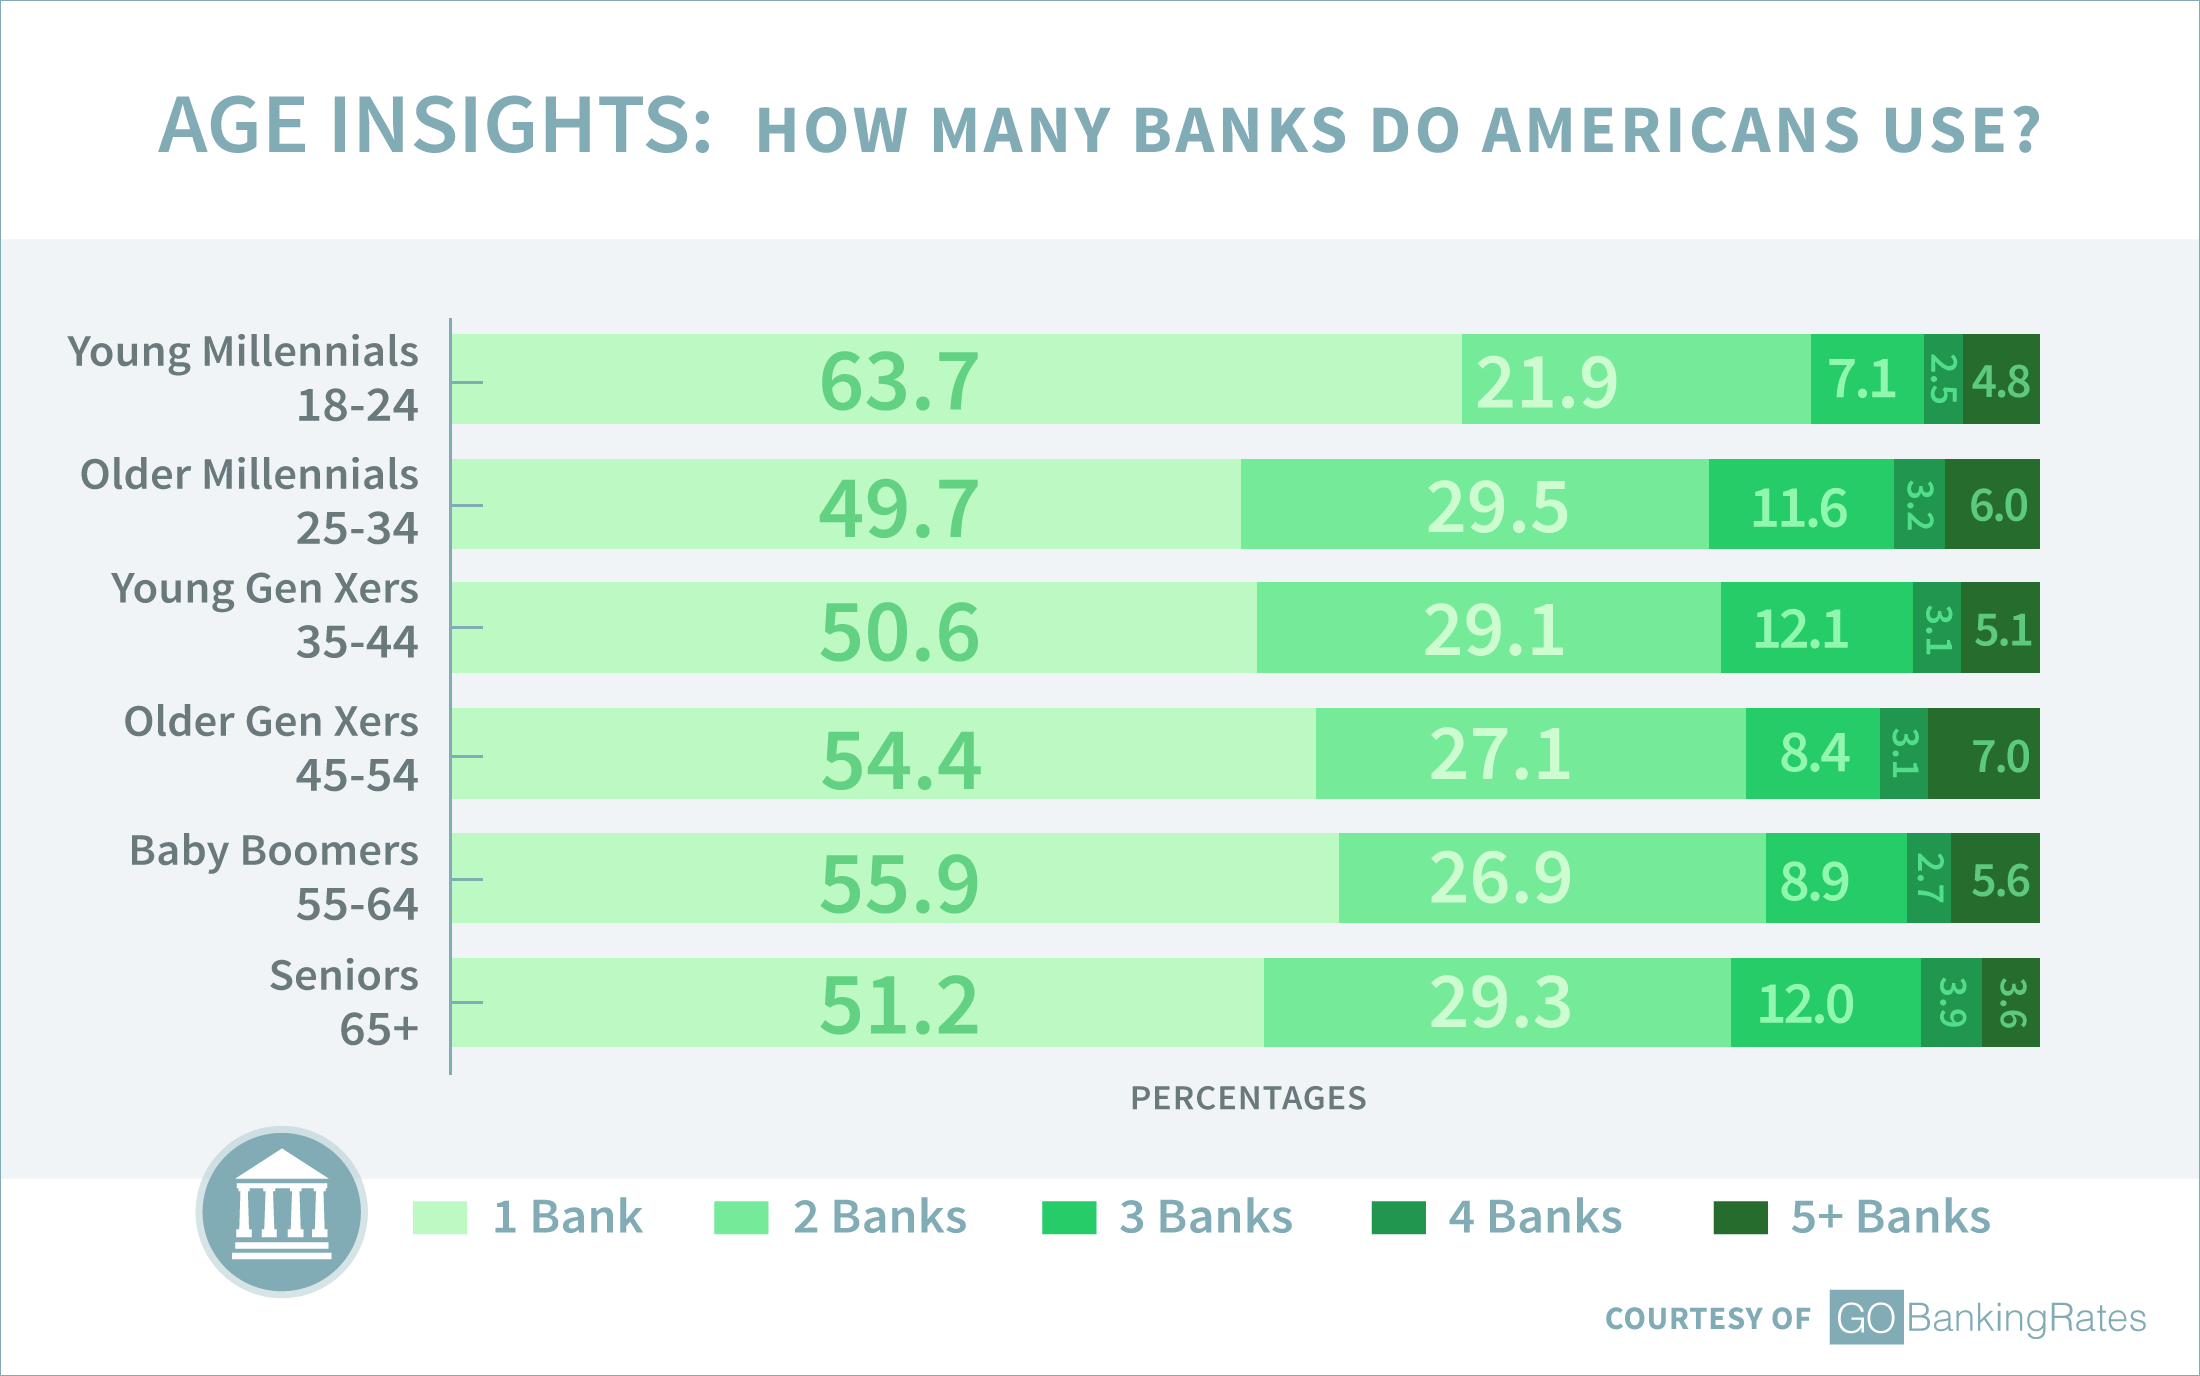 Age Insights: How Many Banks Do Americans Use?